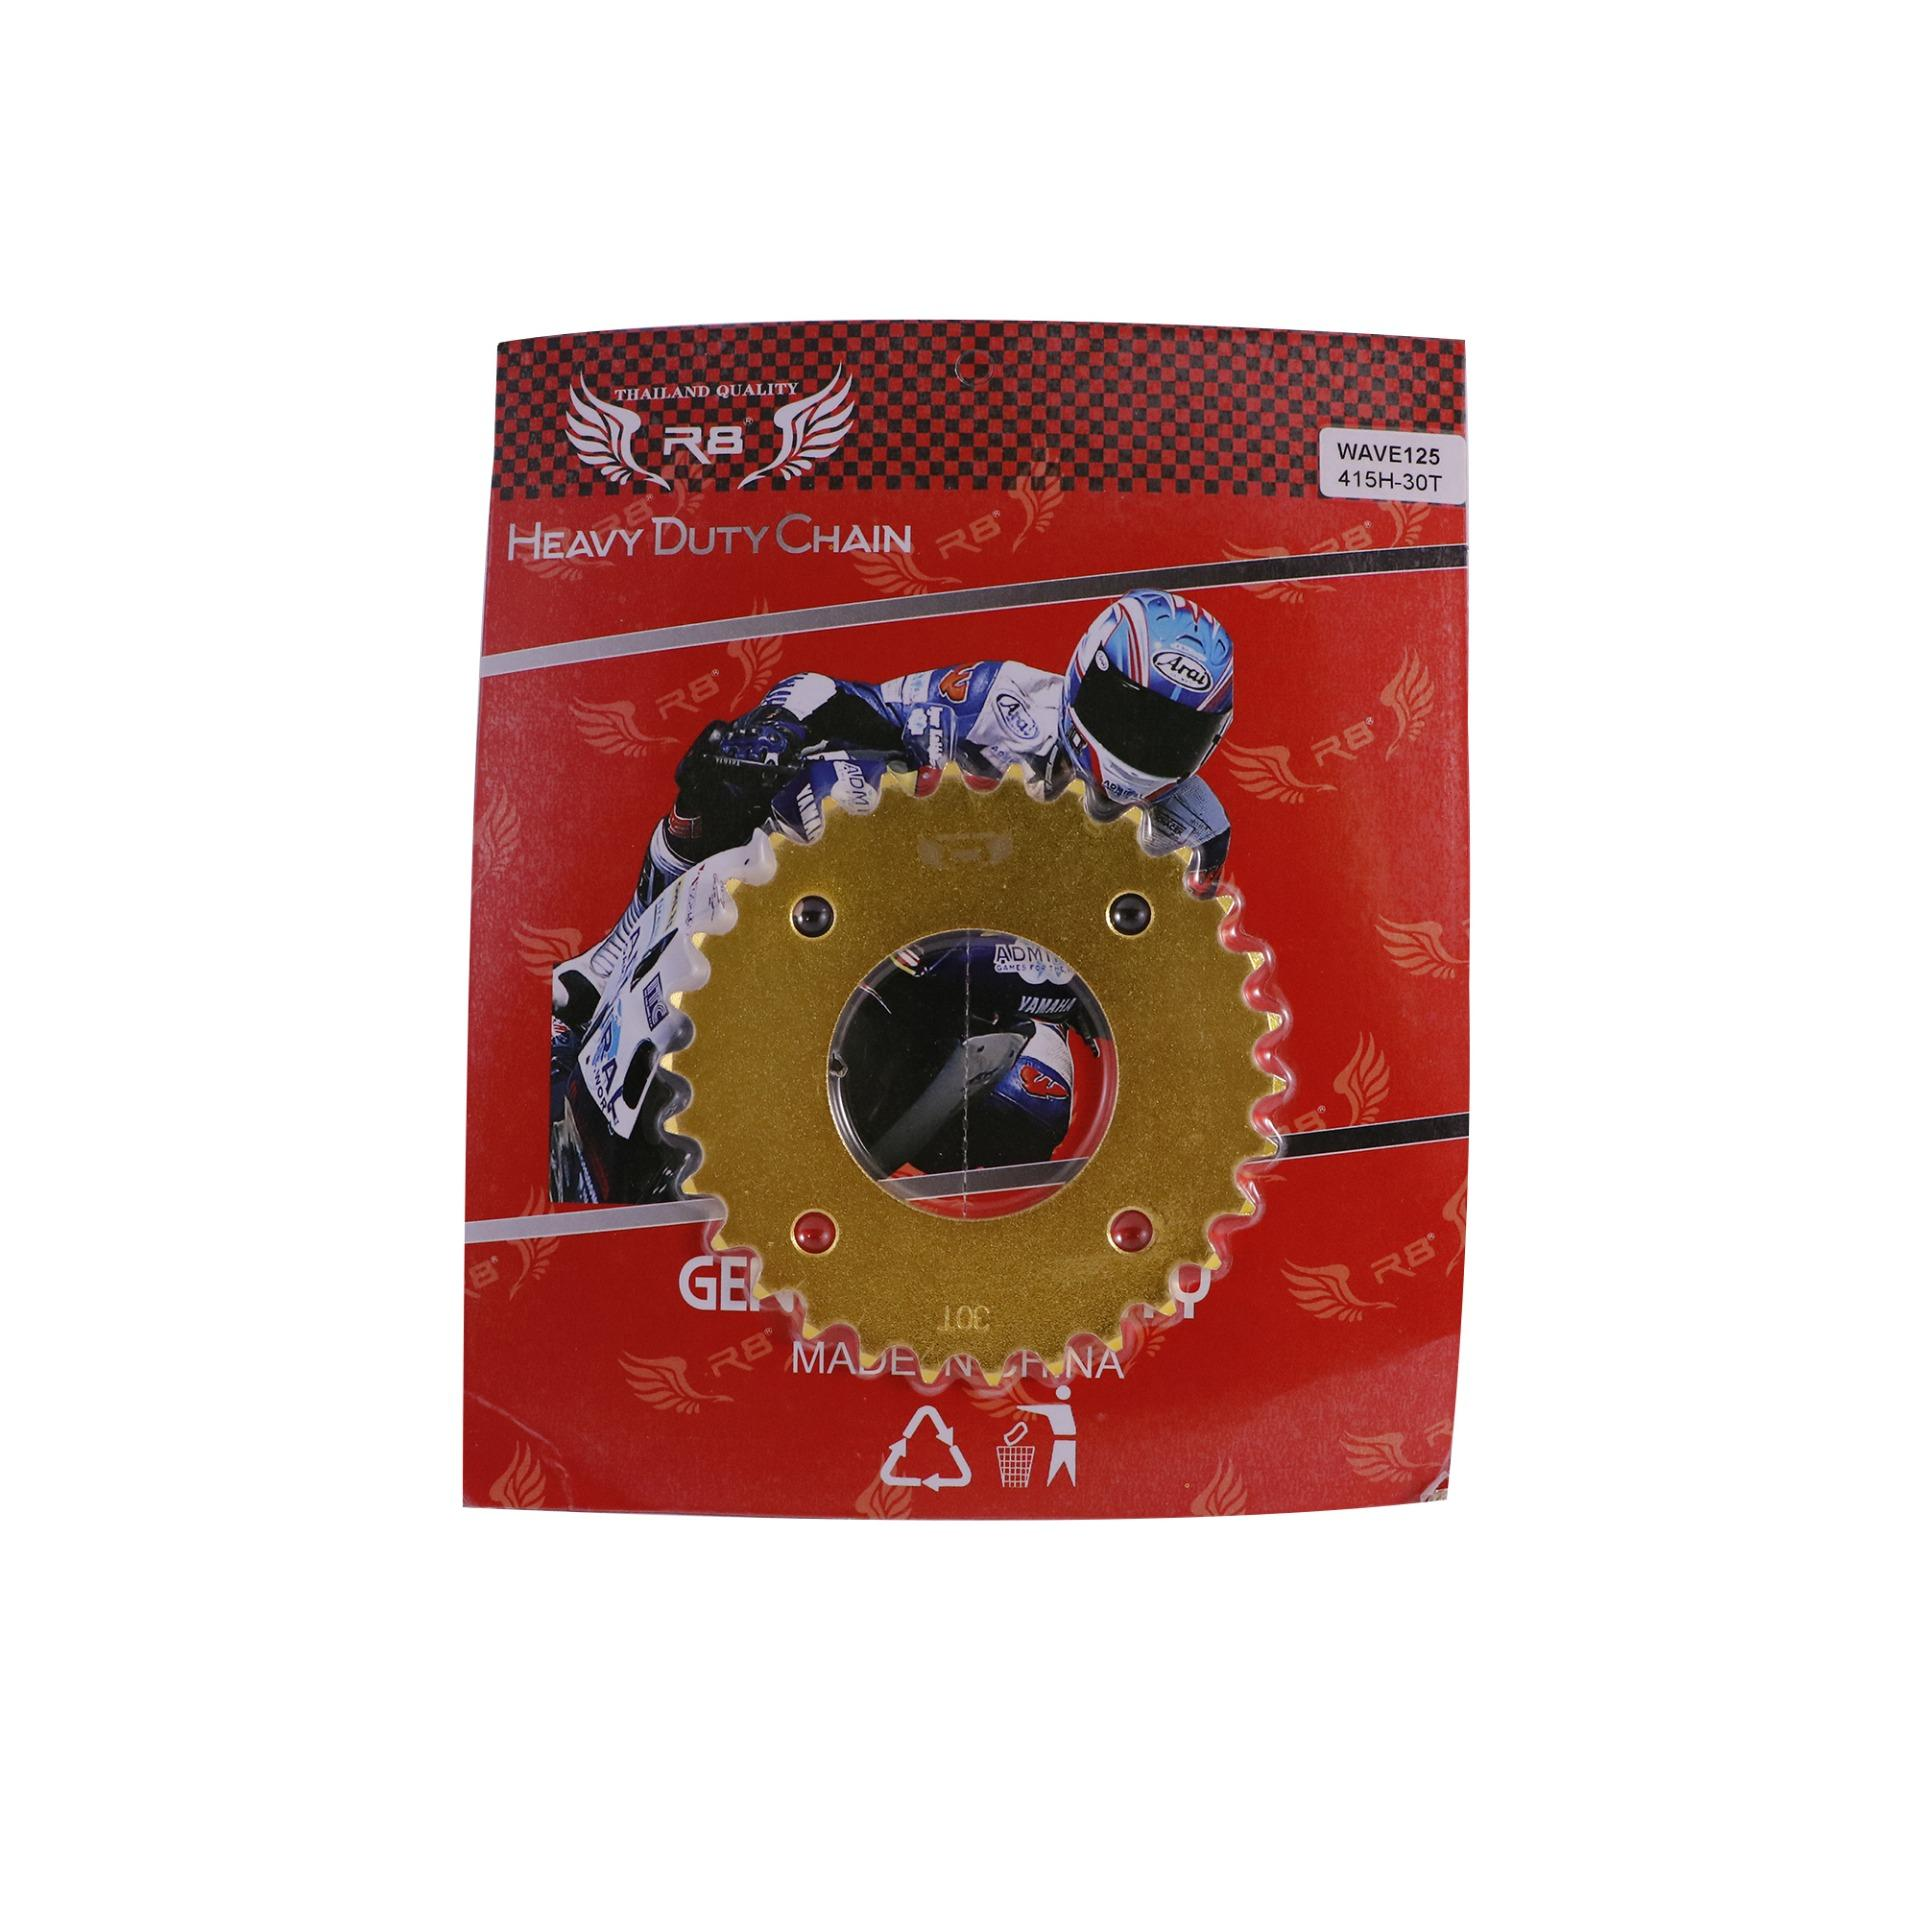 c1254c4410554 Motorcycle Chains for sale - Motorcycle Sprockets online brands ...